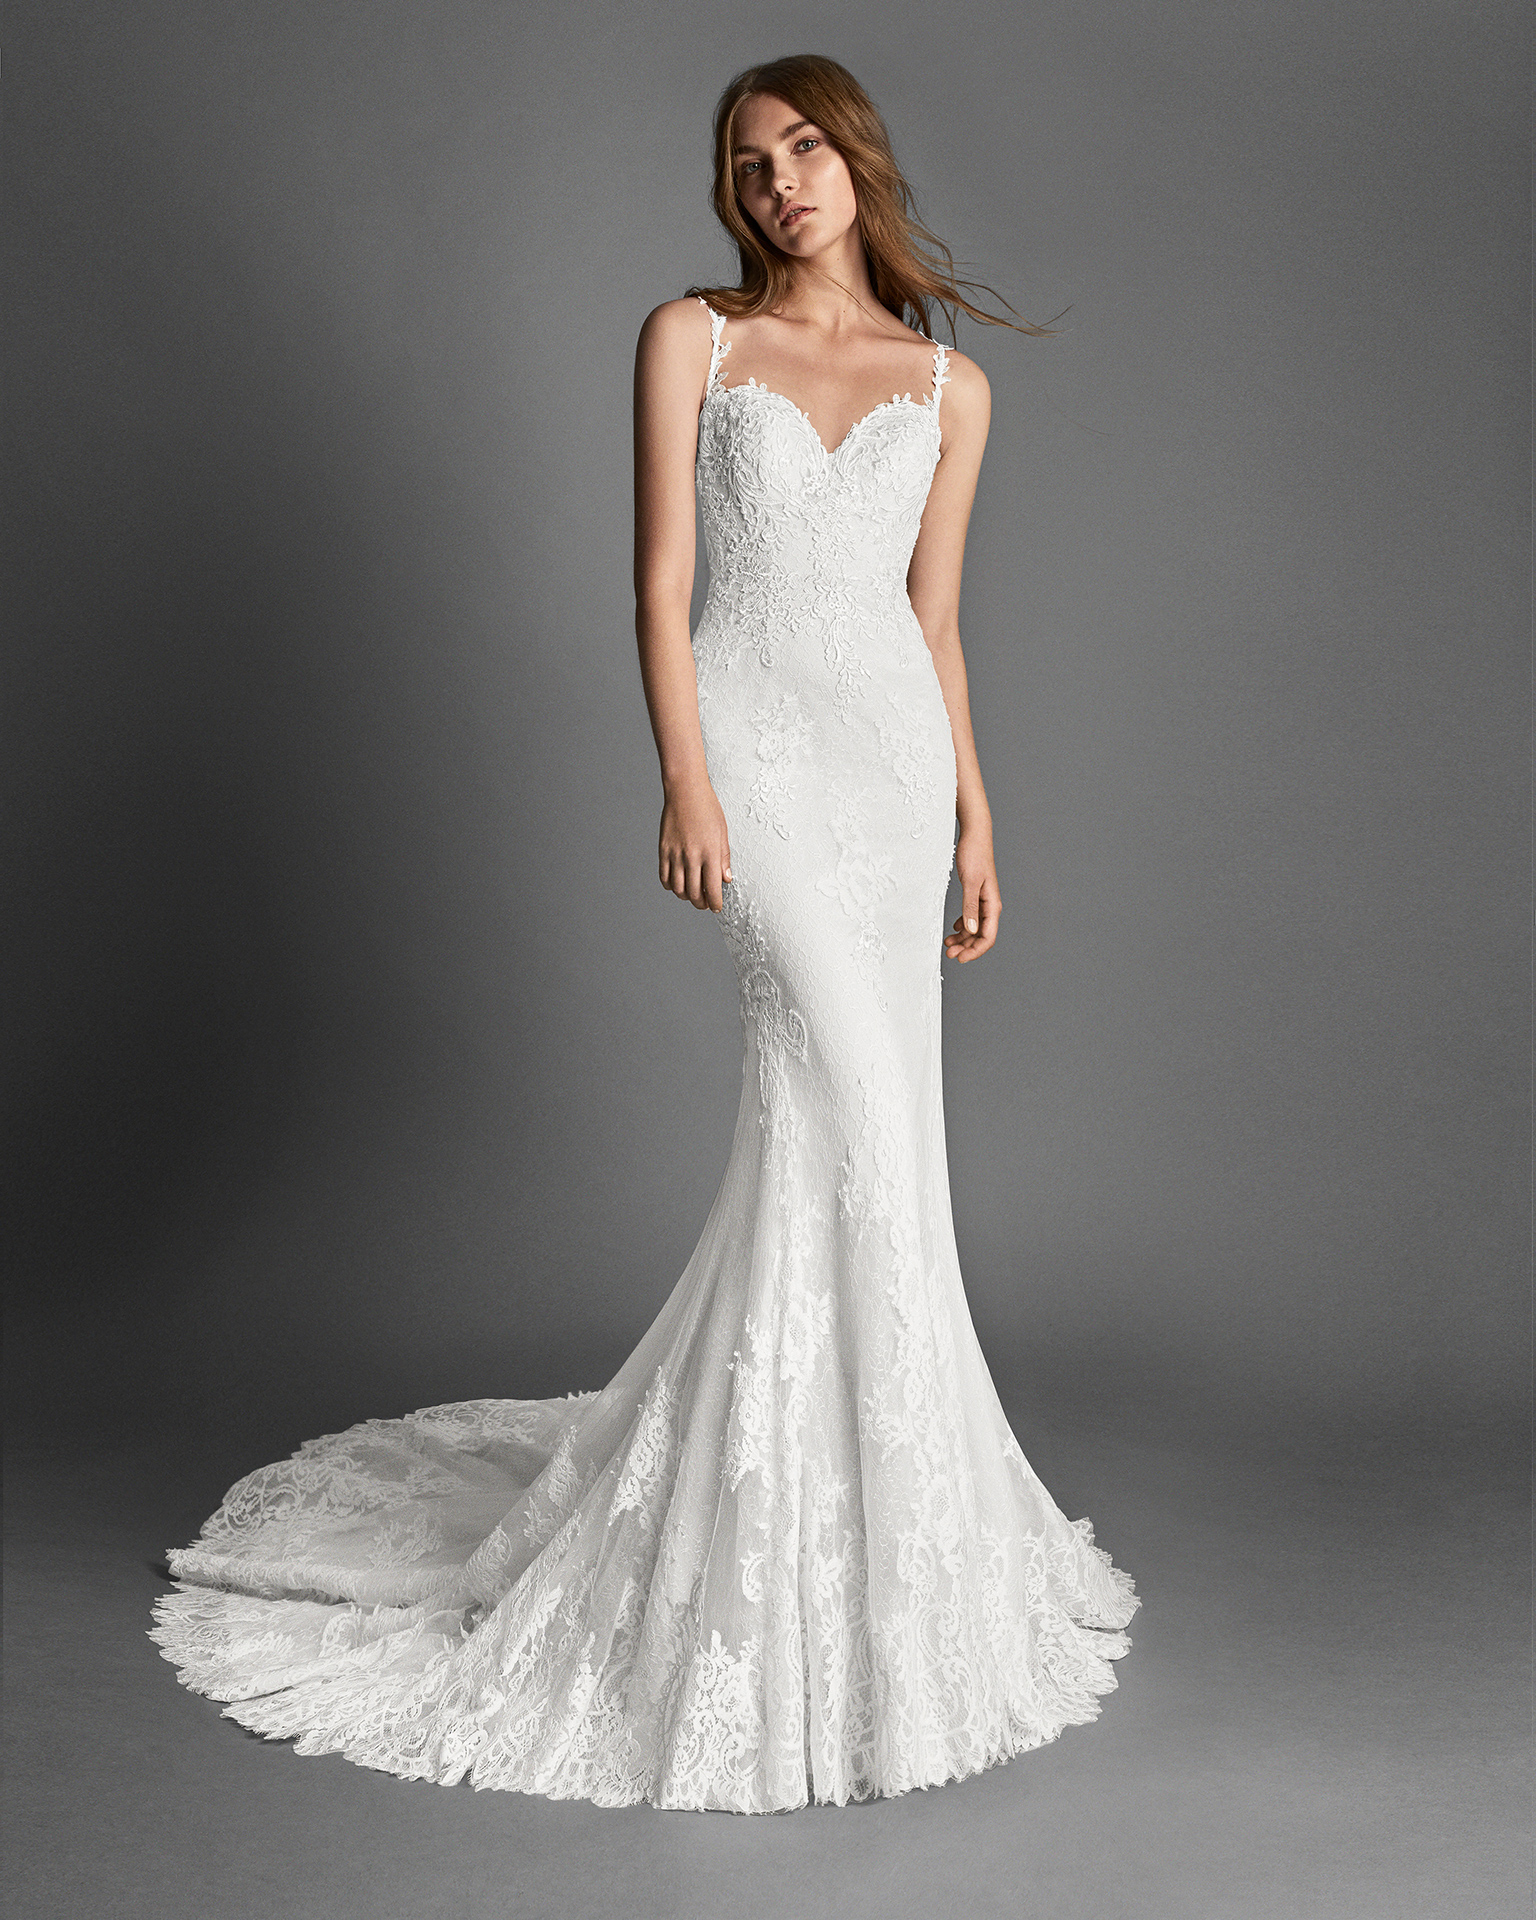 Mermaid-style beaded lace and guipure lace wedding dress with sweetheart neckline, low back and lace appliqués.